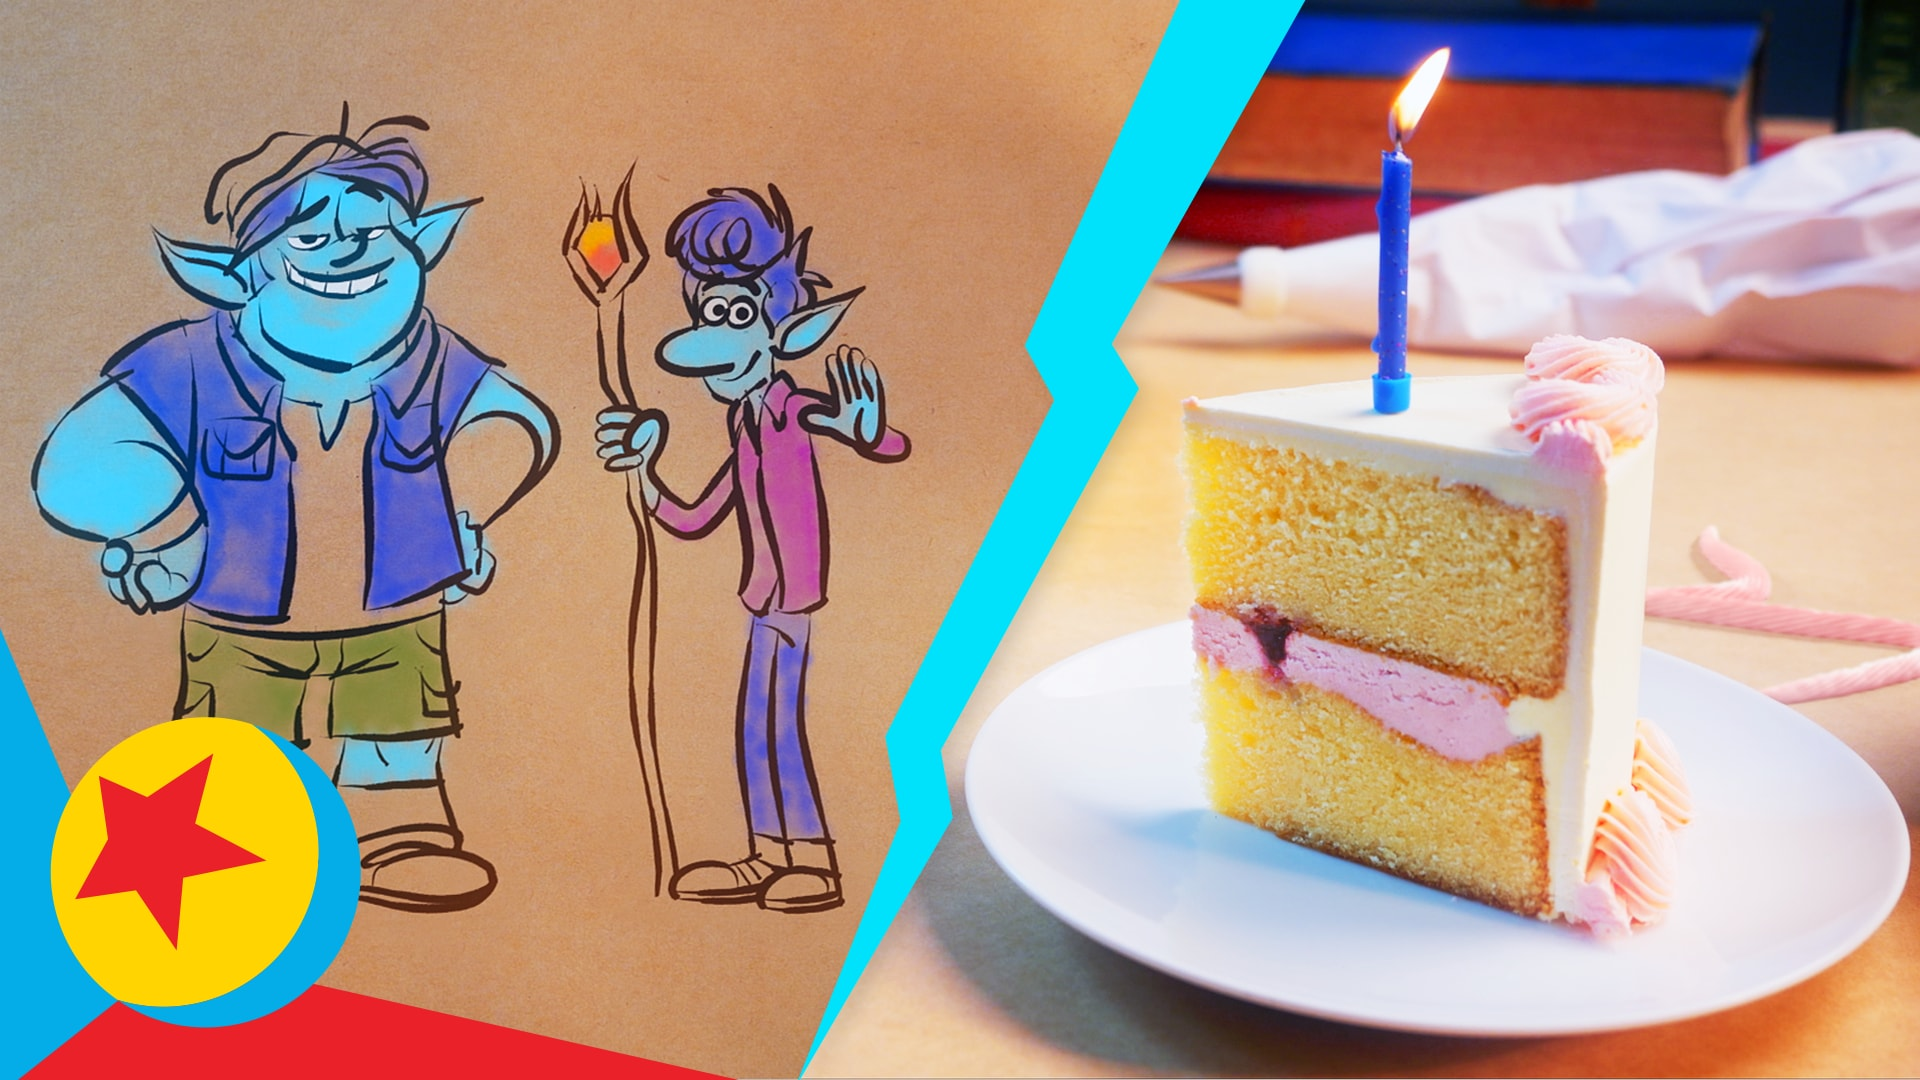 Ian and Barley from Onward Make Birthday Cake | Cooking With Pixar